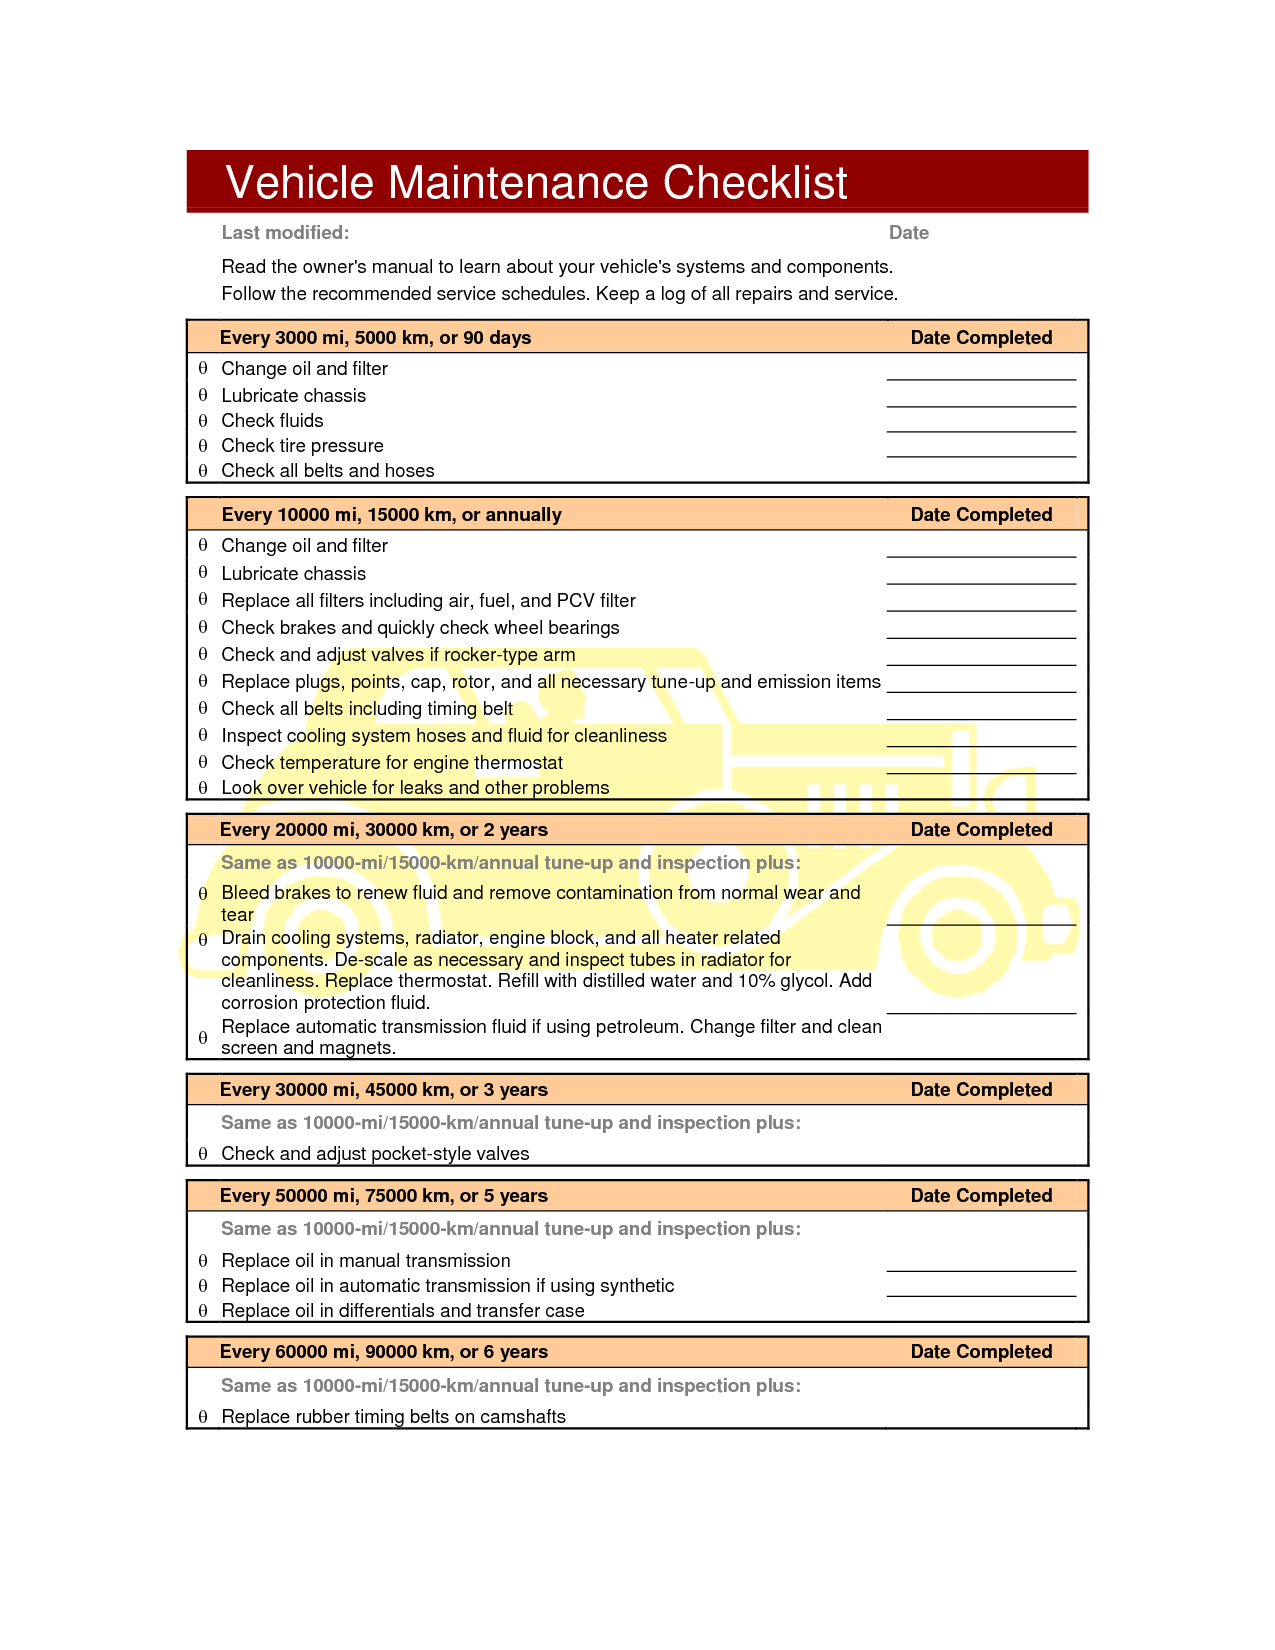 oil change checklist Vehicle Oil Change Checklist Template http://www.lonewolf-software ...